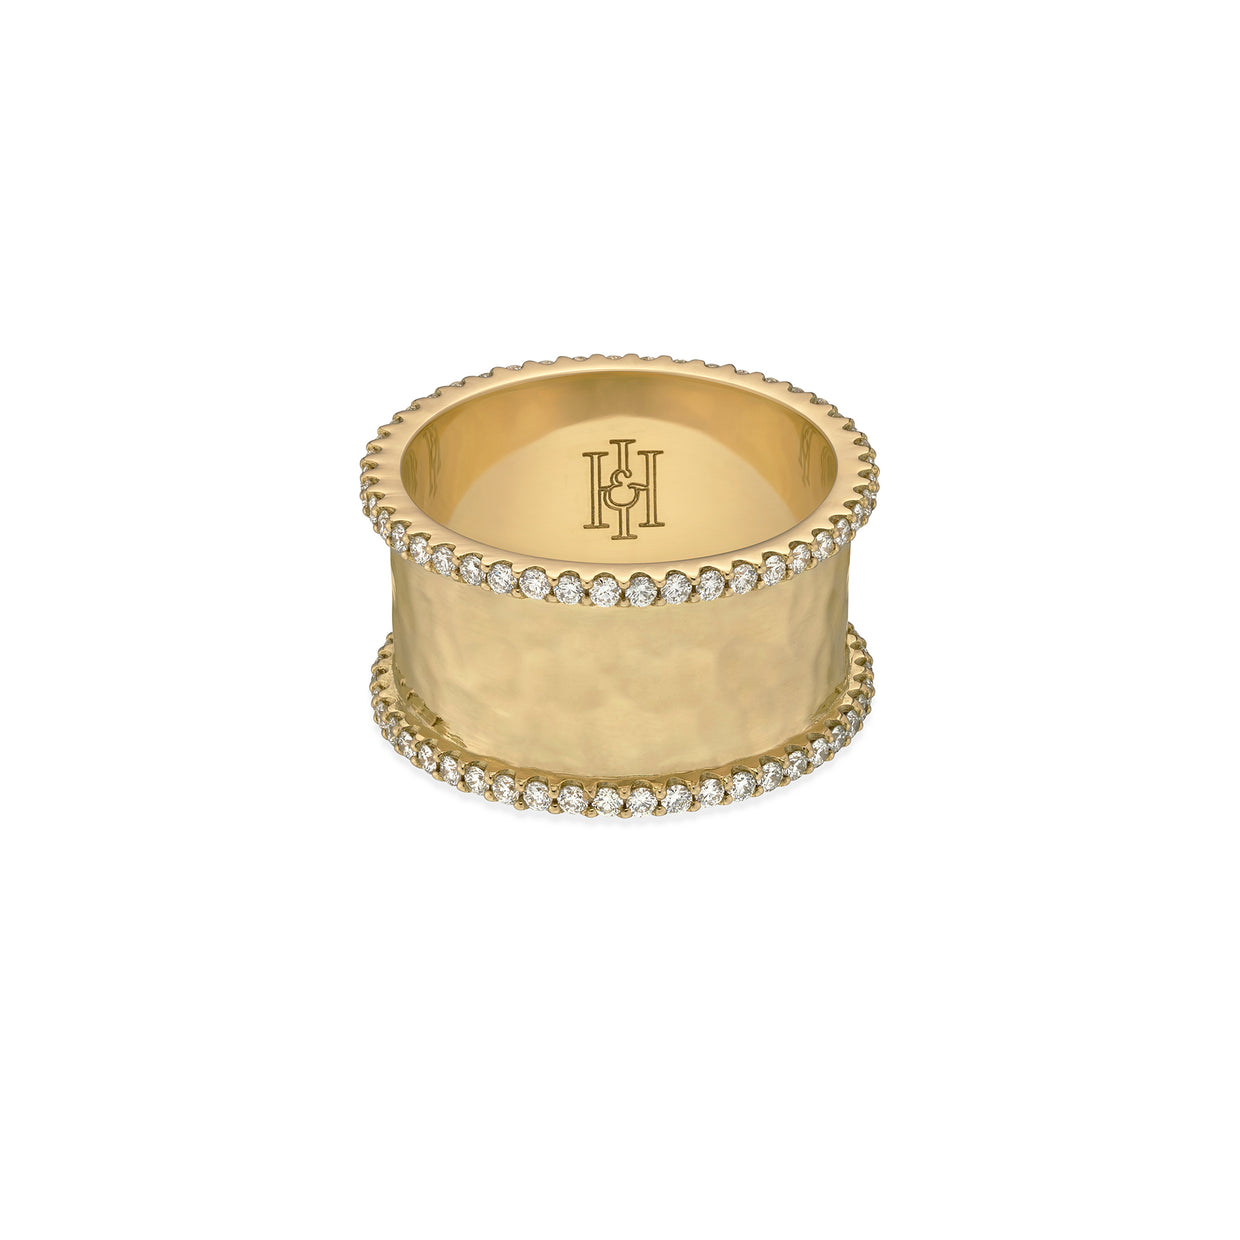 H&I Duke hammered ring in yellow gold